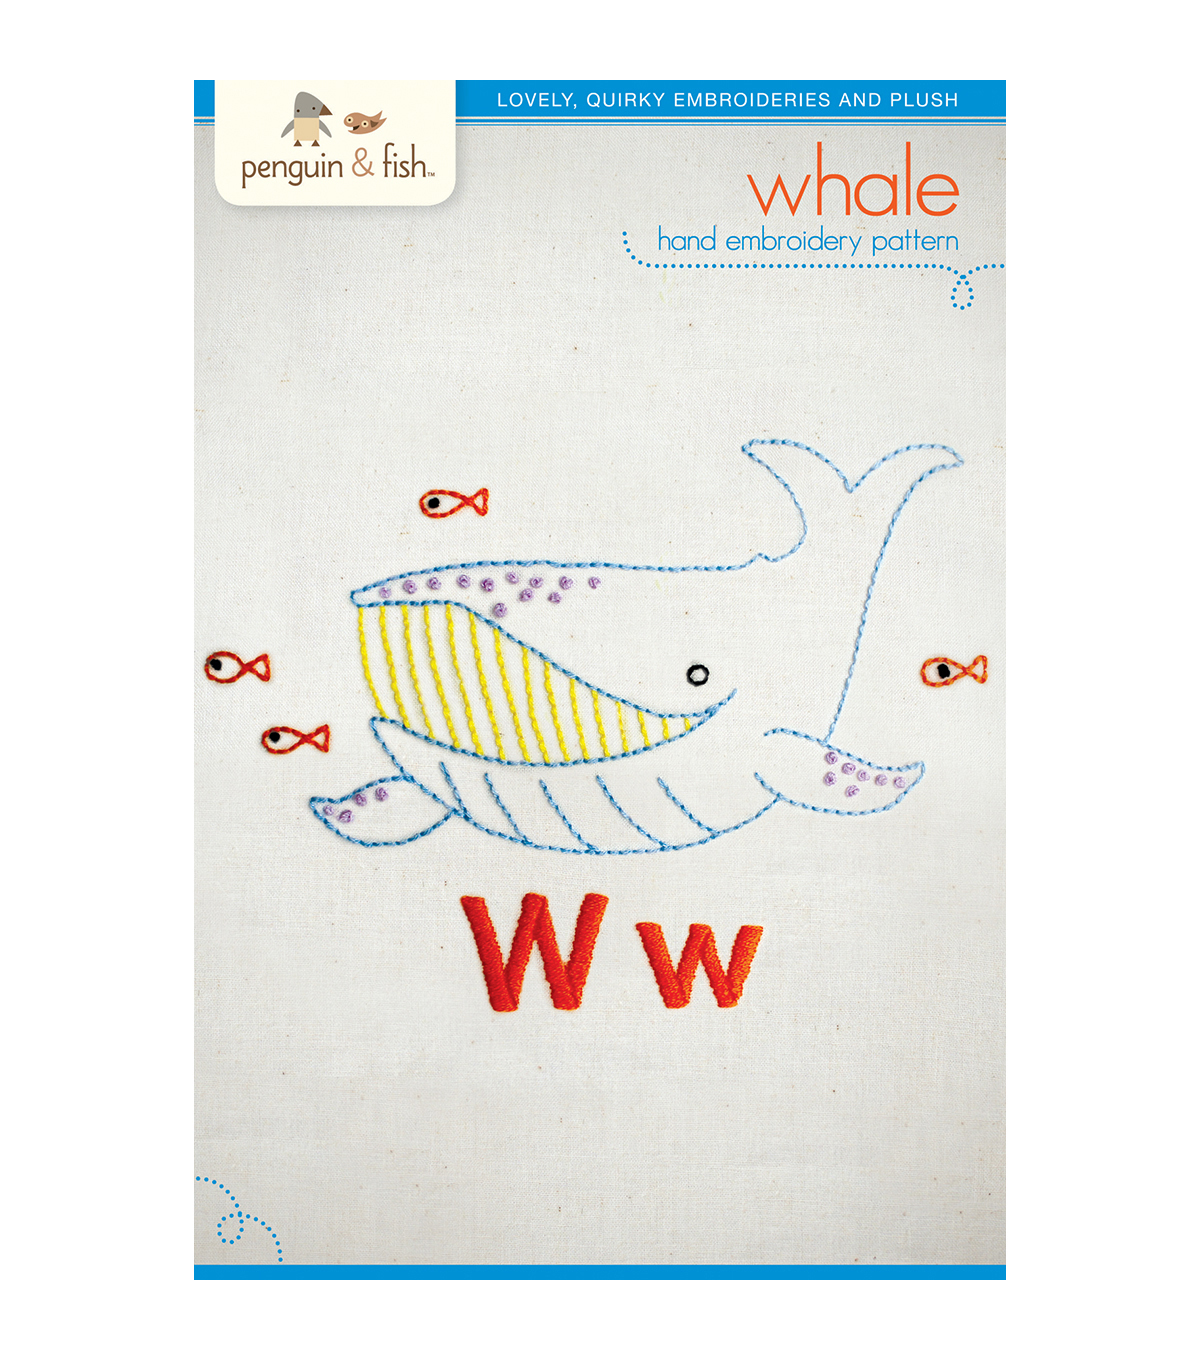 Penguin & Fish Embroidery Patterns-Whale